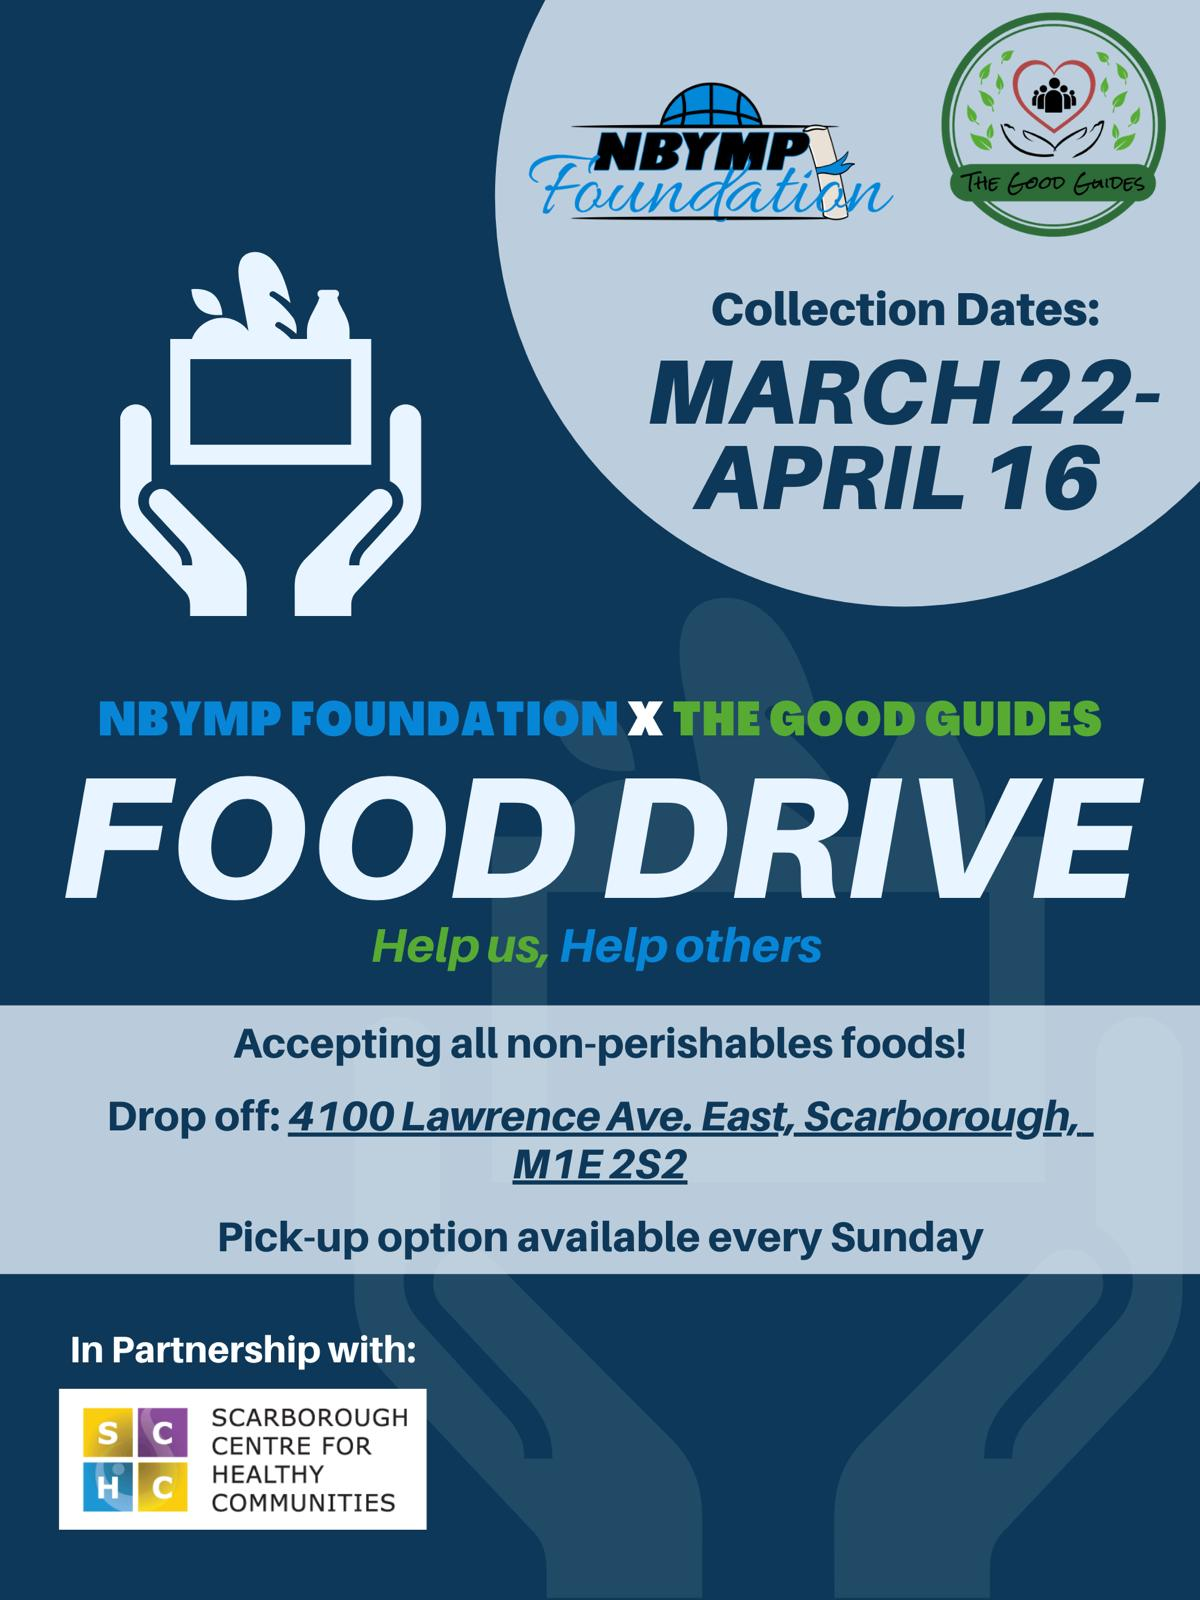 An infographic introducing the NBYMP Foundation Food Drive